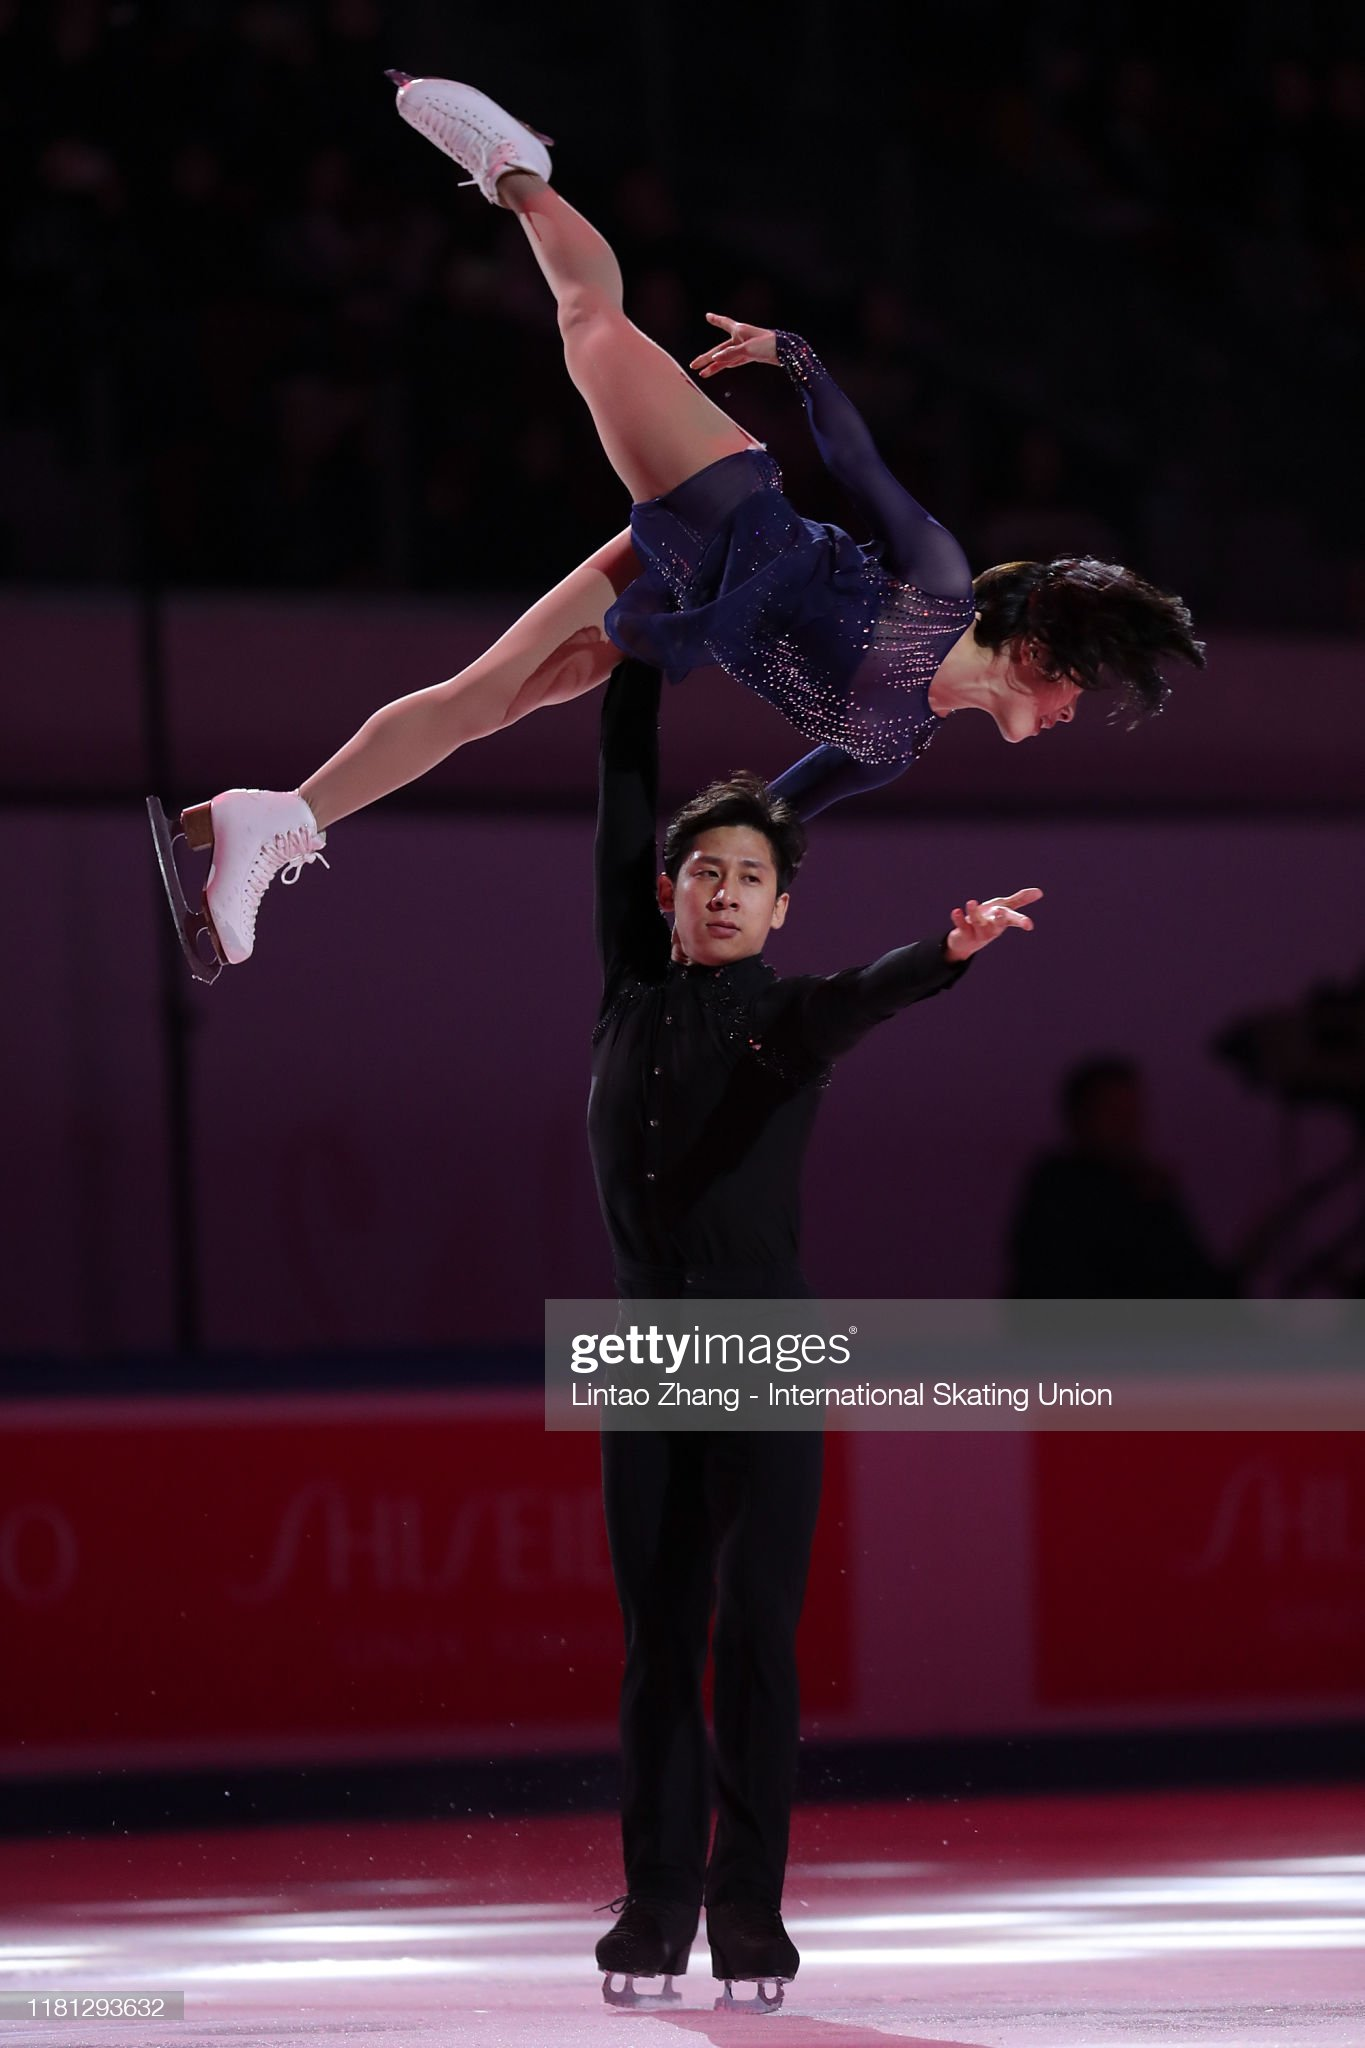 GP - 4 этап. Cup of China Chongqing / CHN November 8-10, 2019 - Страница 12 Sui-wenjing-and-han-cong-of-china-performs-in-the-gala-exhibition-picture-id1181293632?s=2048x2048